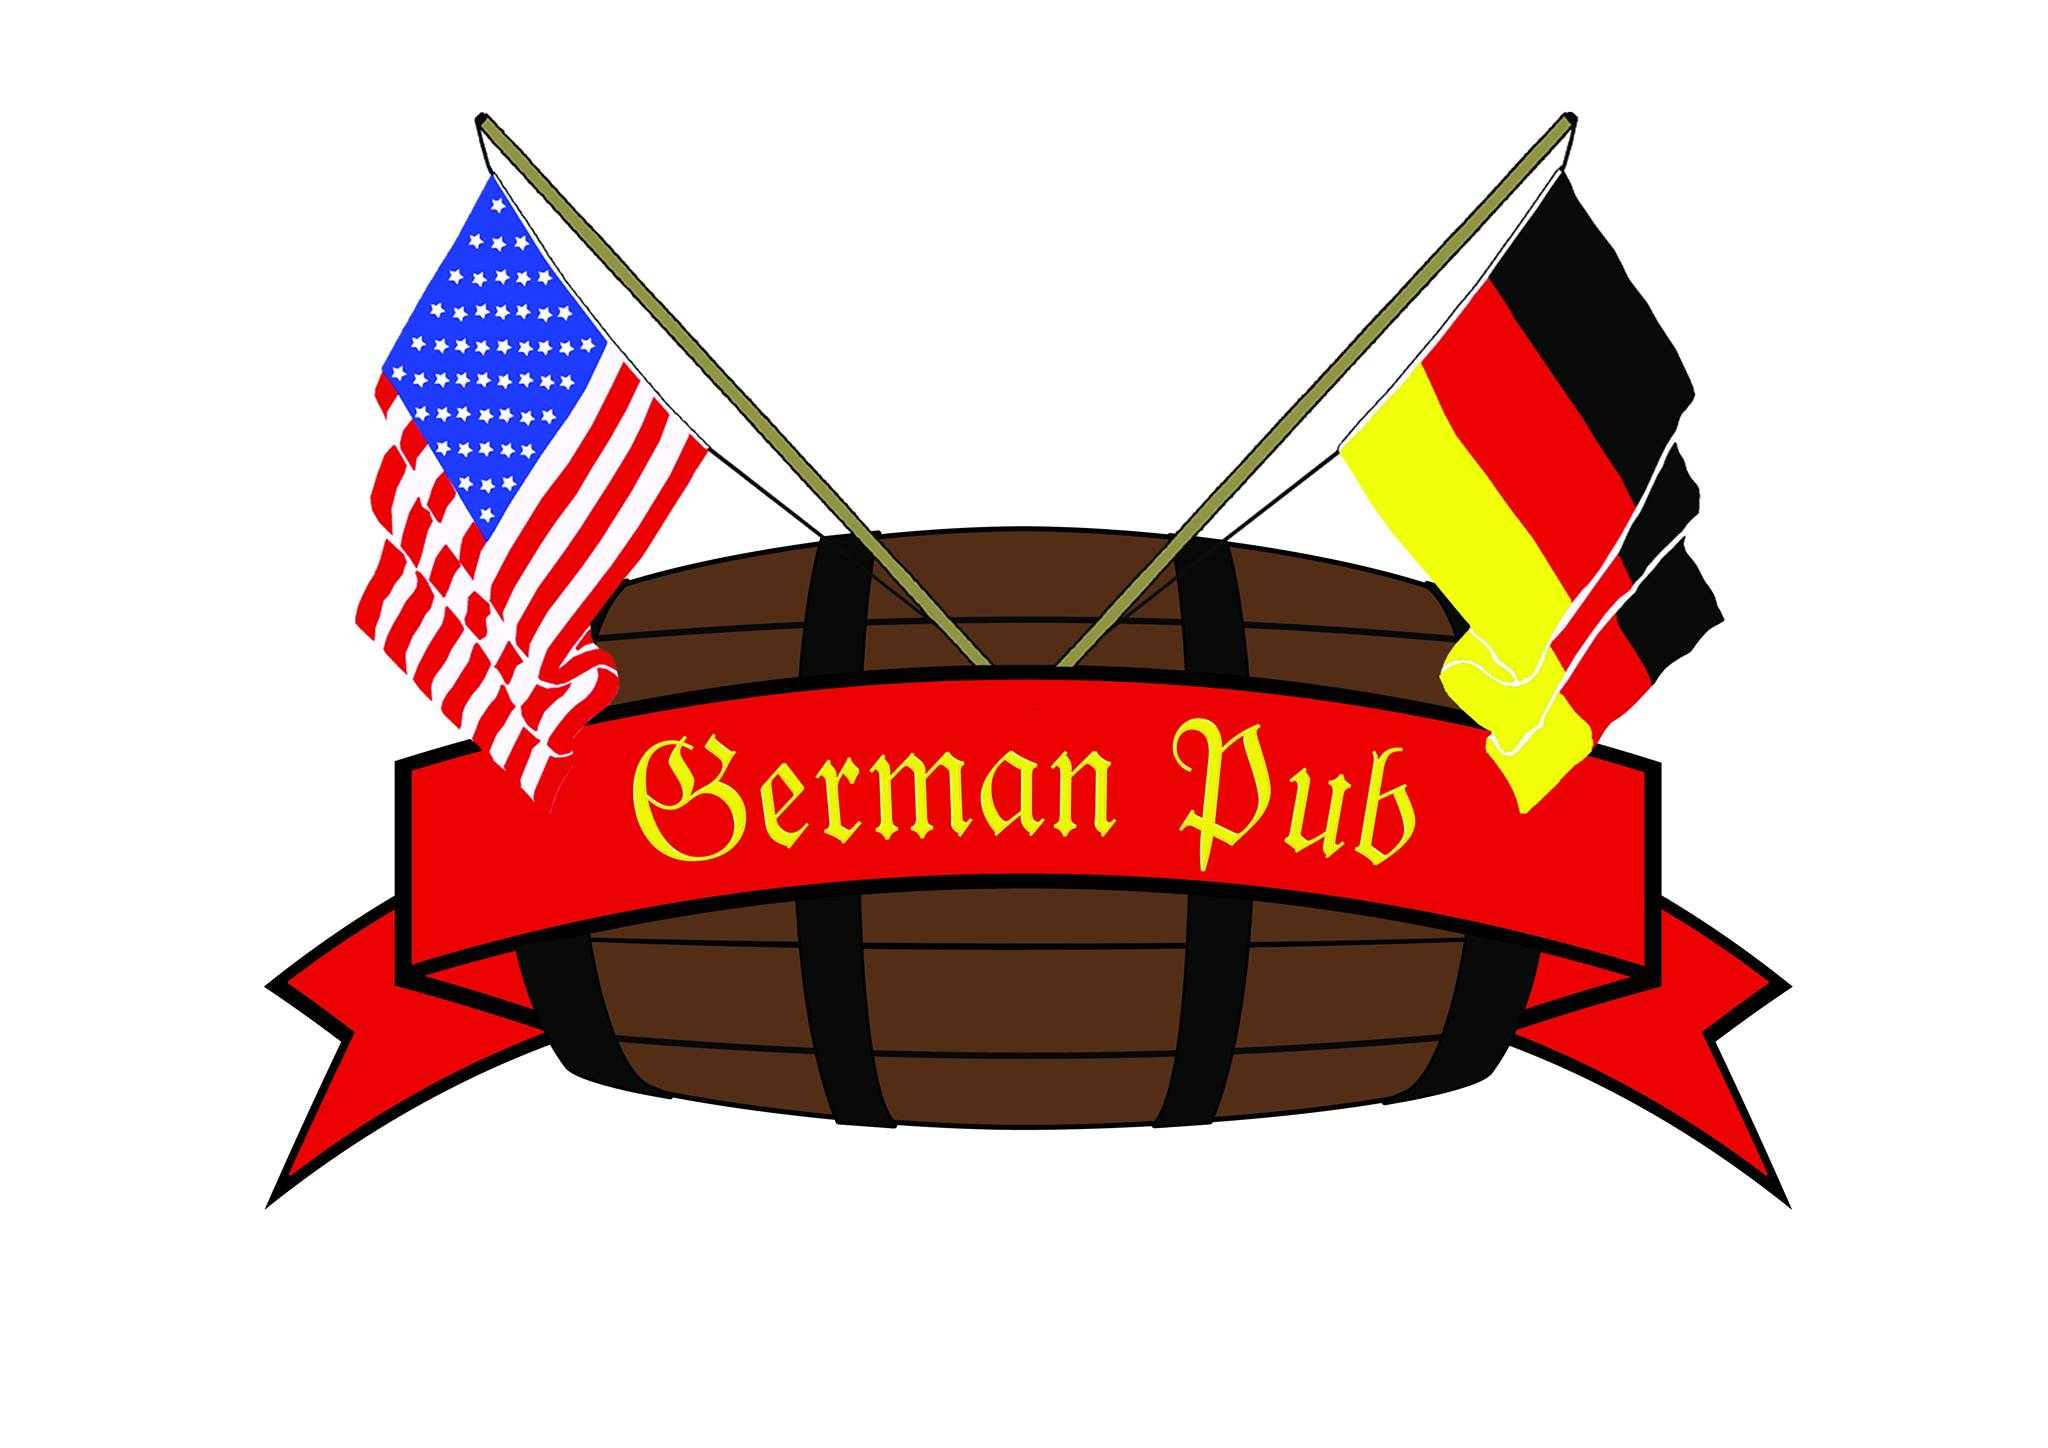 The German Pub